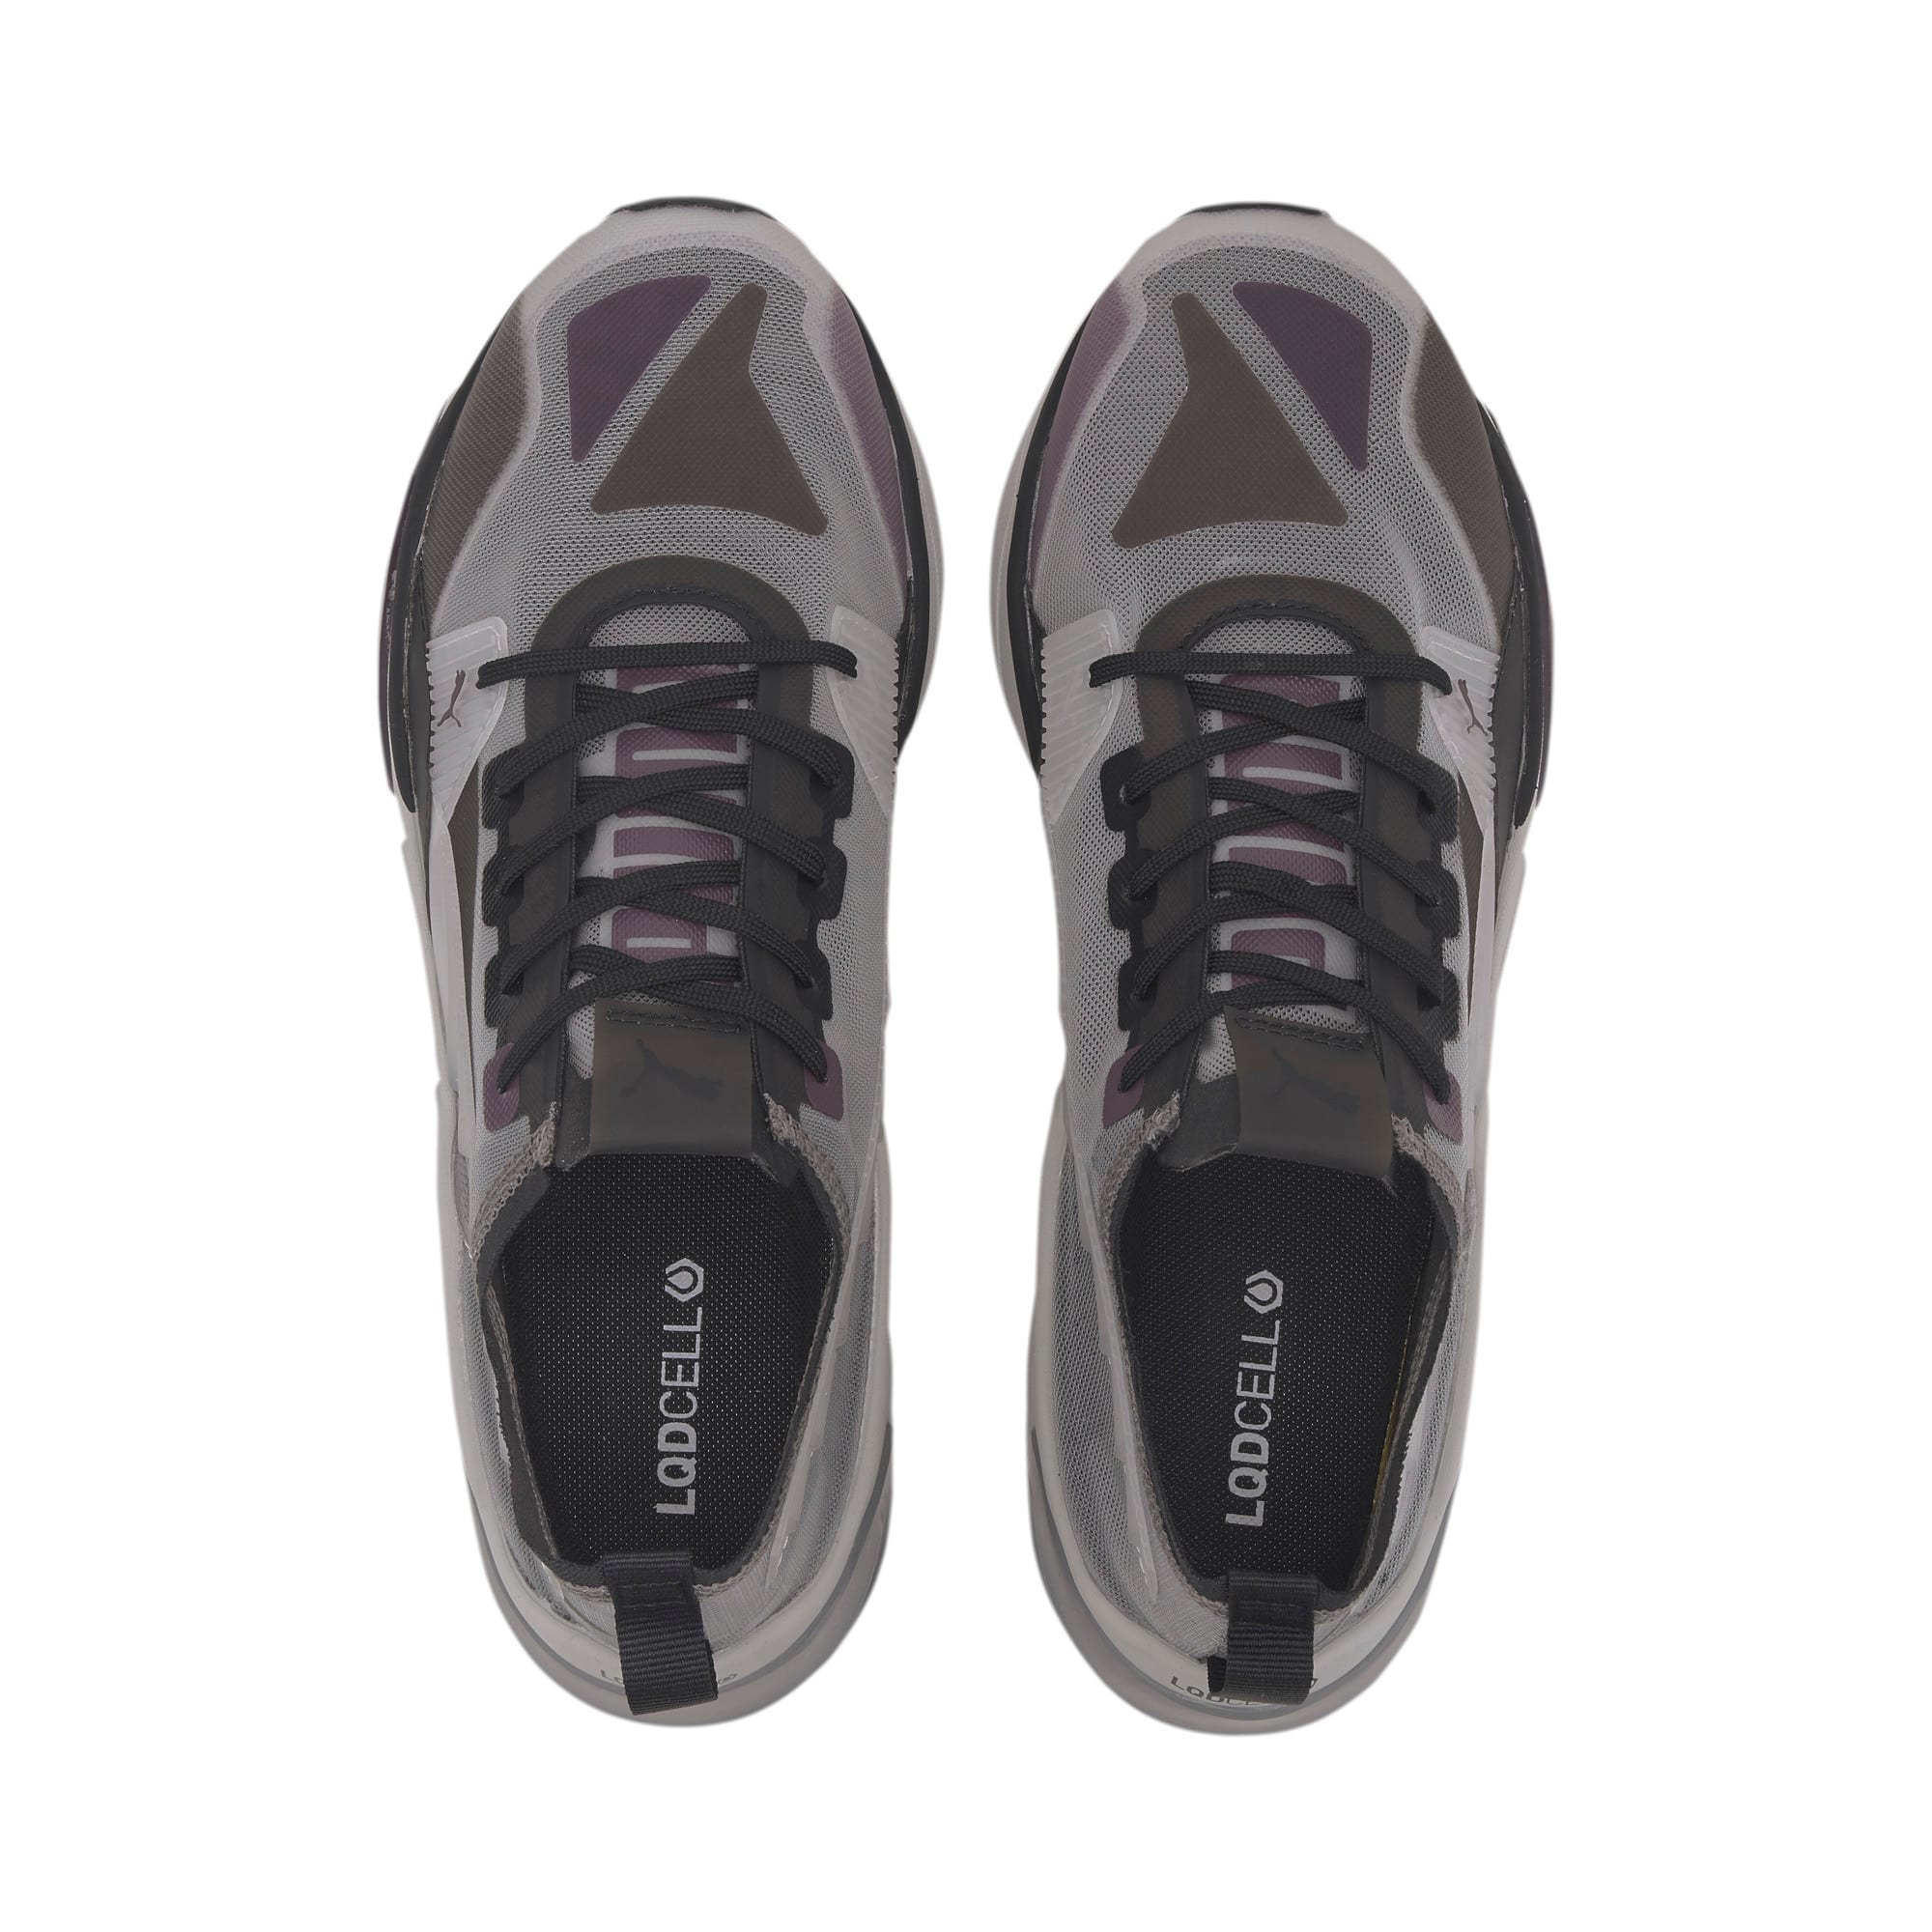 LQDCELL Optic Sheer trainingsschoenen, Gray Violet-Puma Black, large